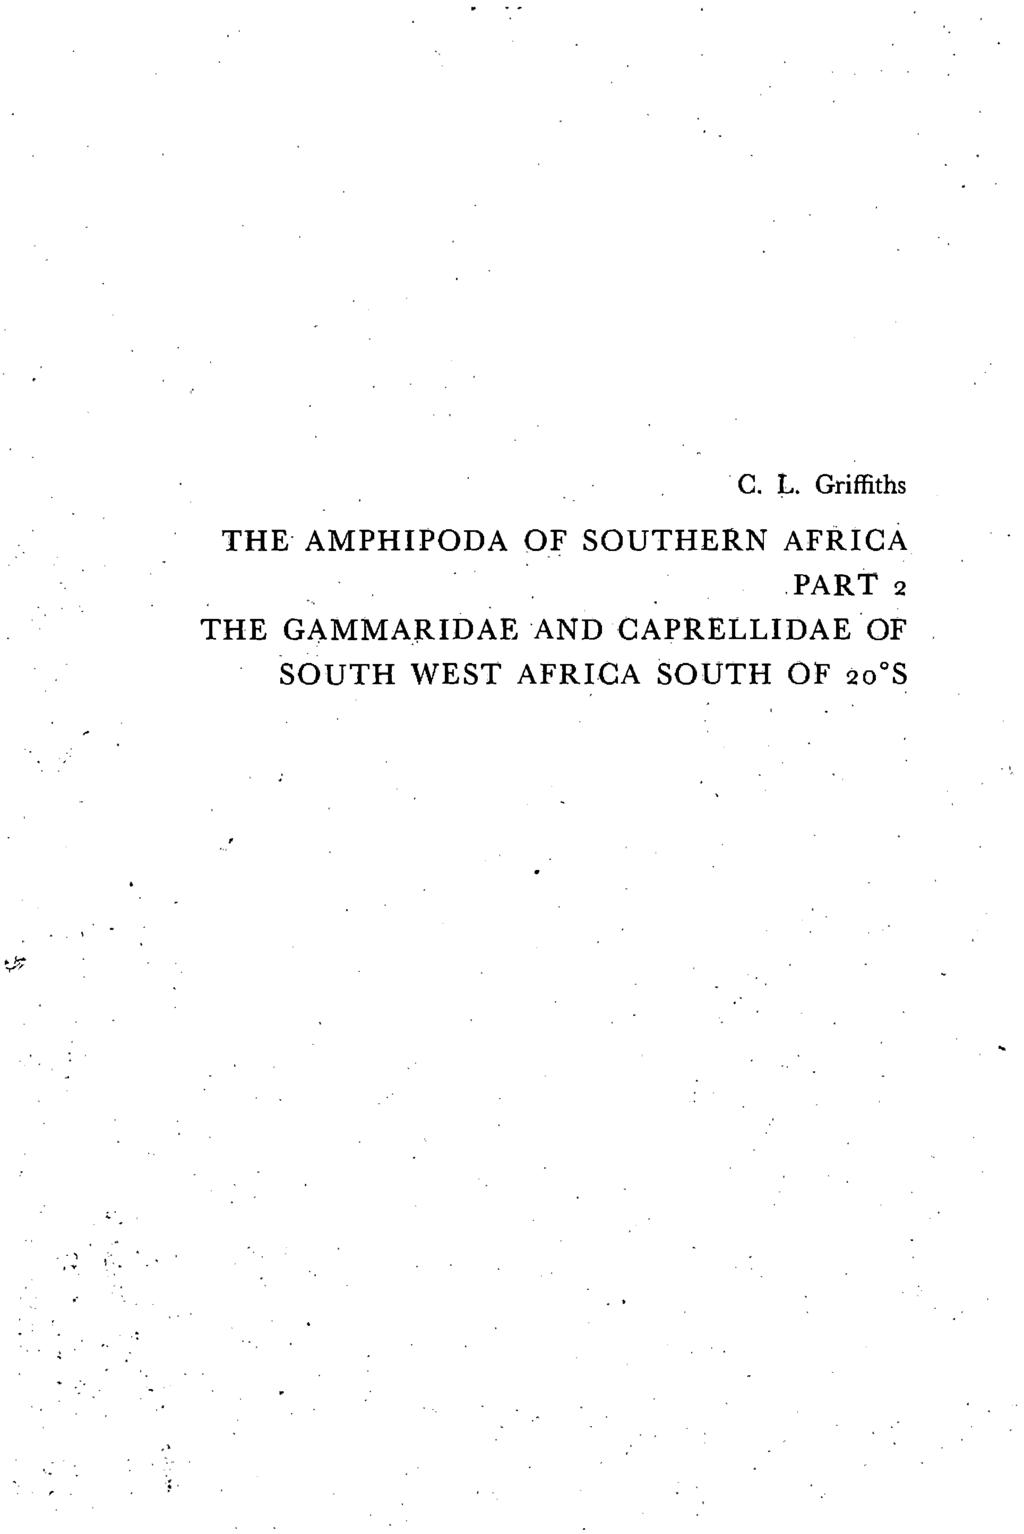 C. L. Griffiths THE- AMPHIPODA OF SOUTHERN AFRICA,PART 2 THE